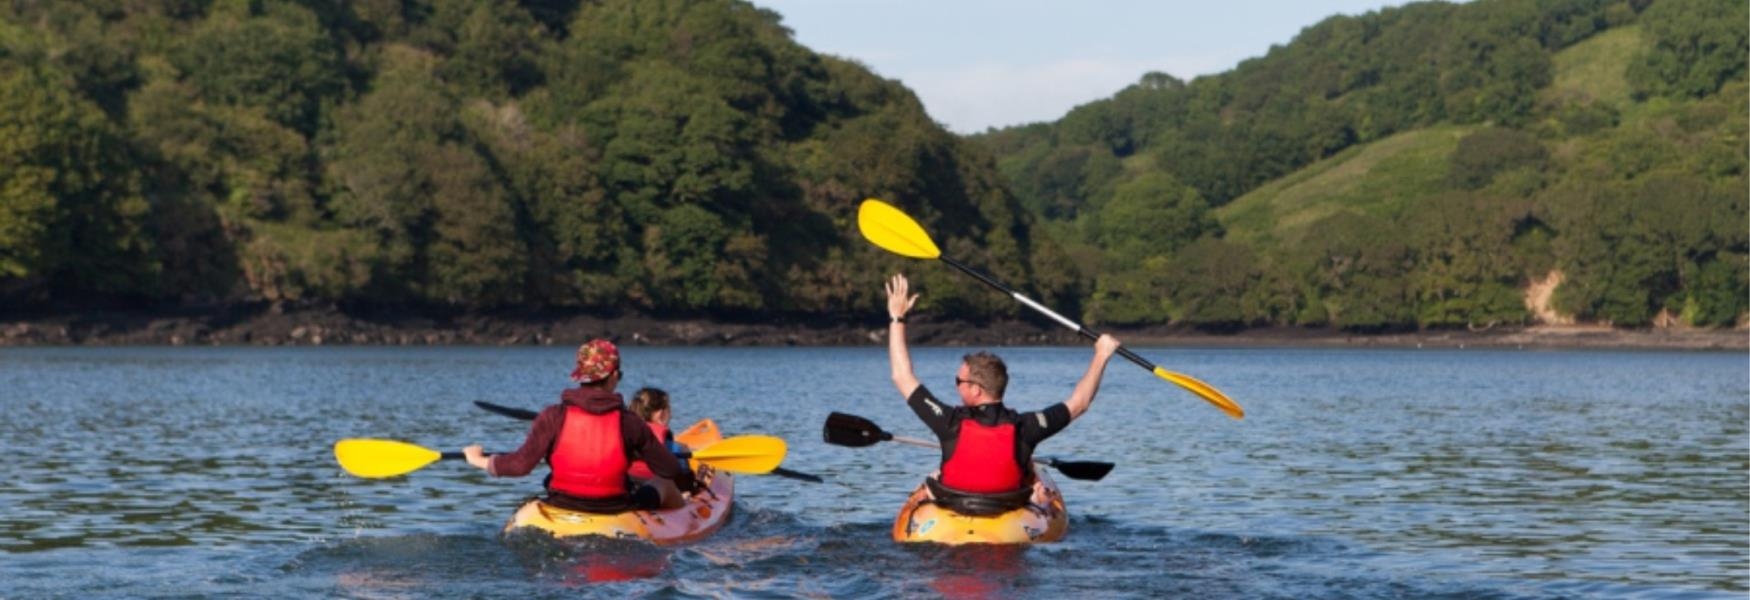 Explore the estuary in a rented kayak (c) Fowey River Hire